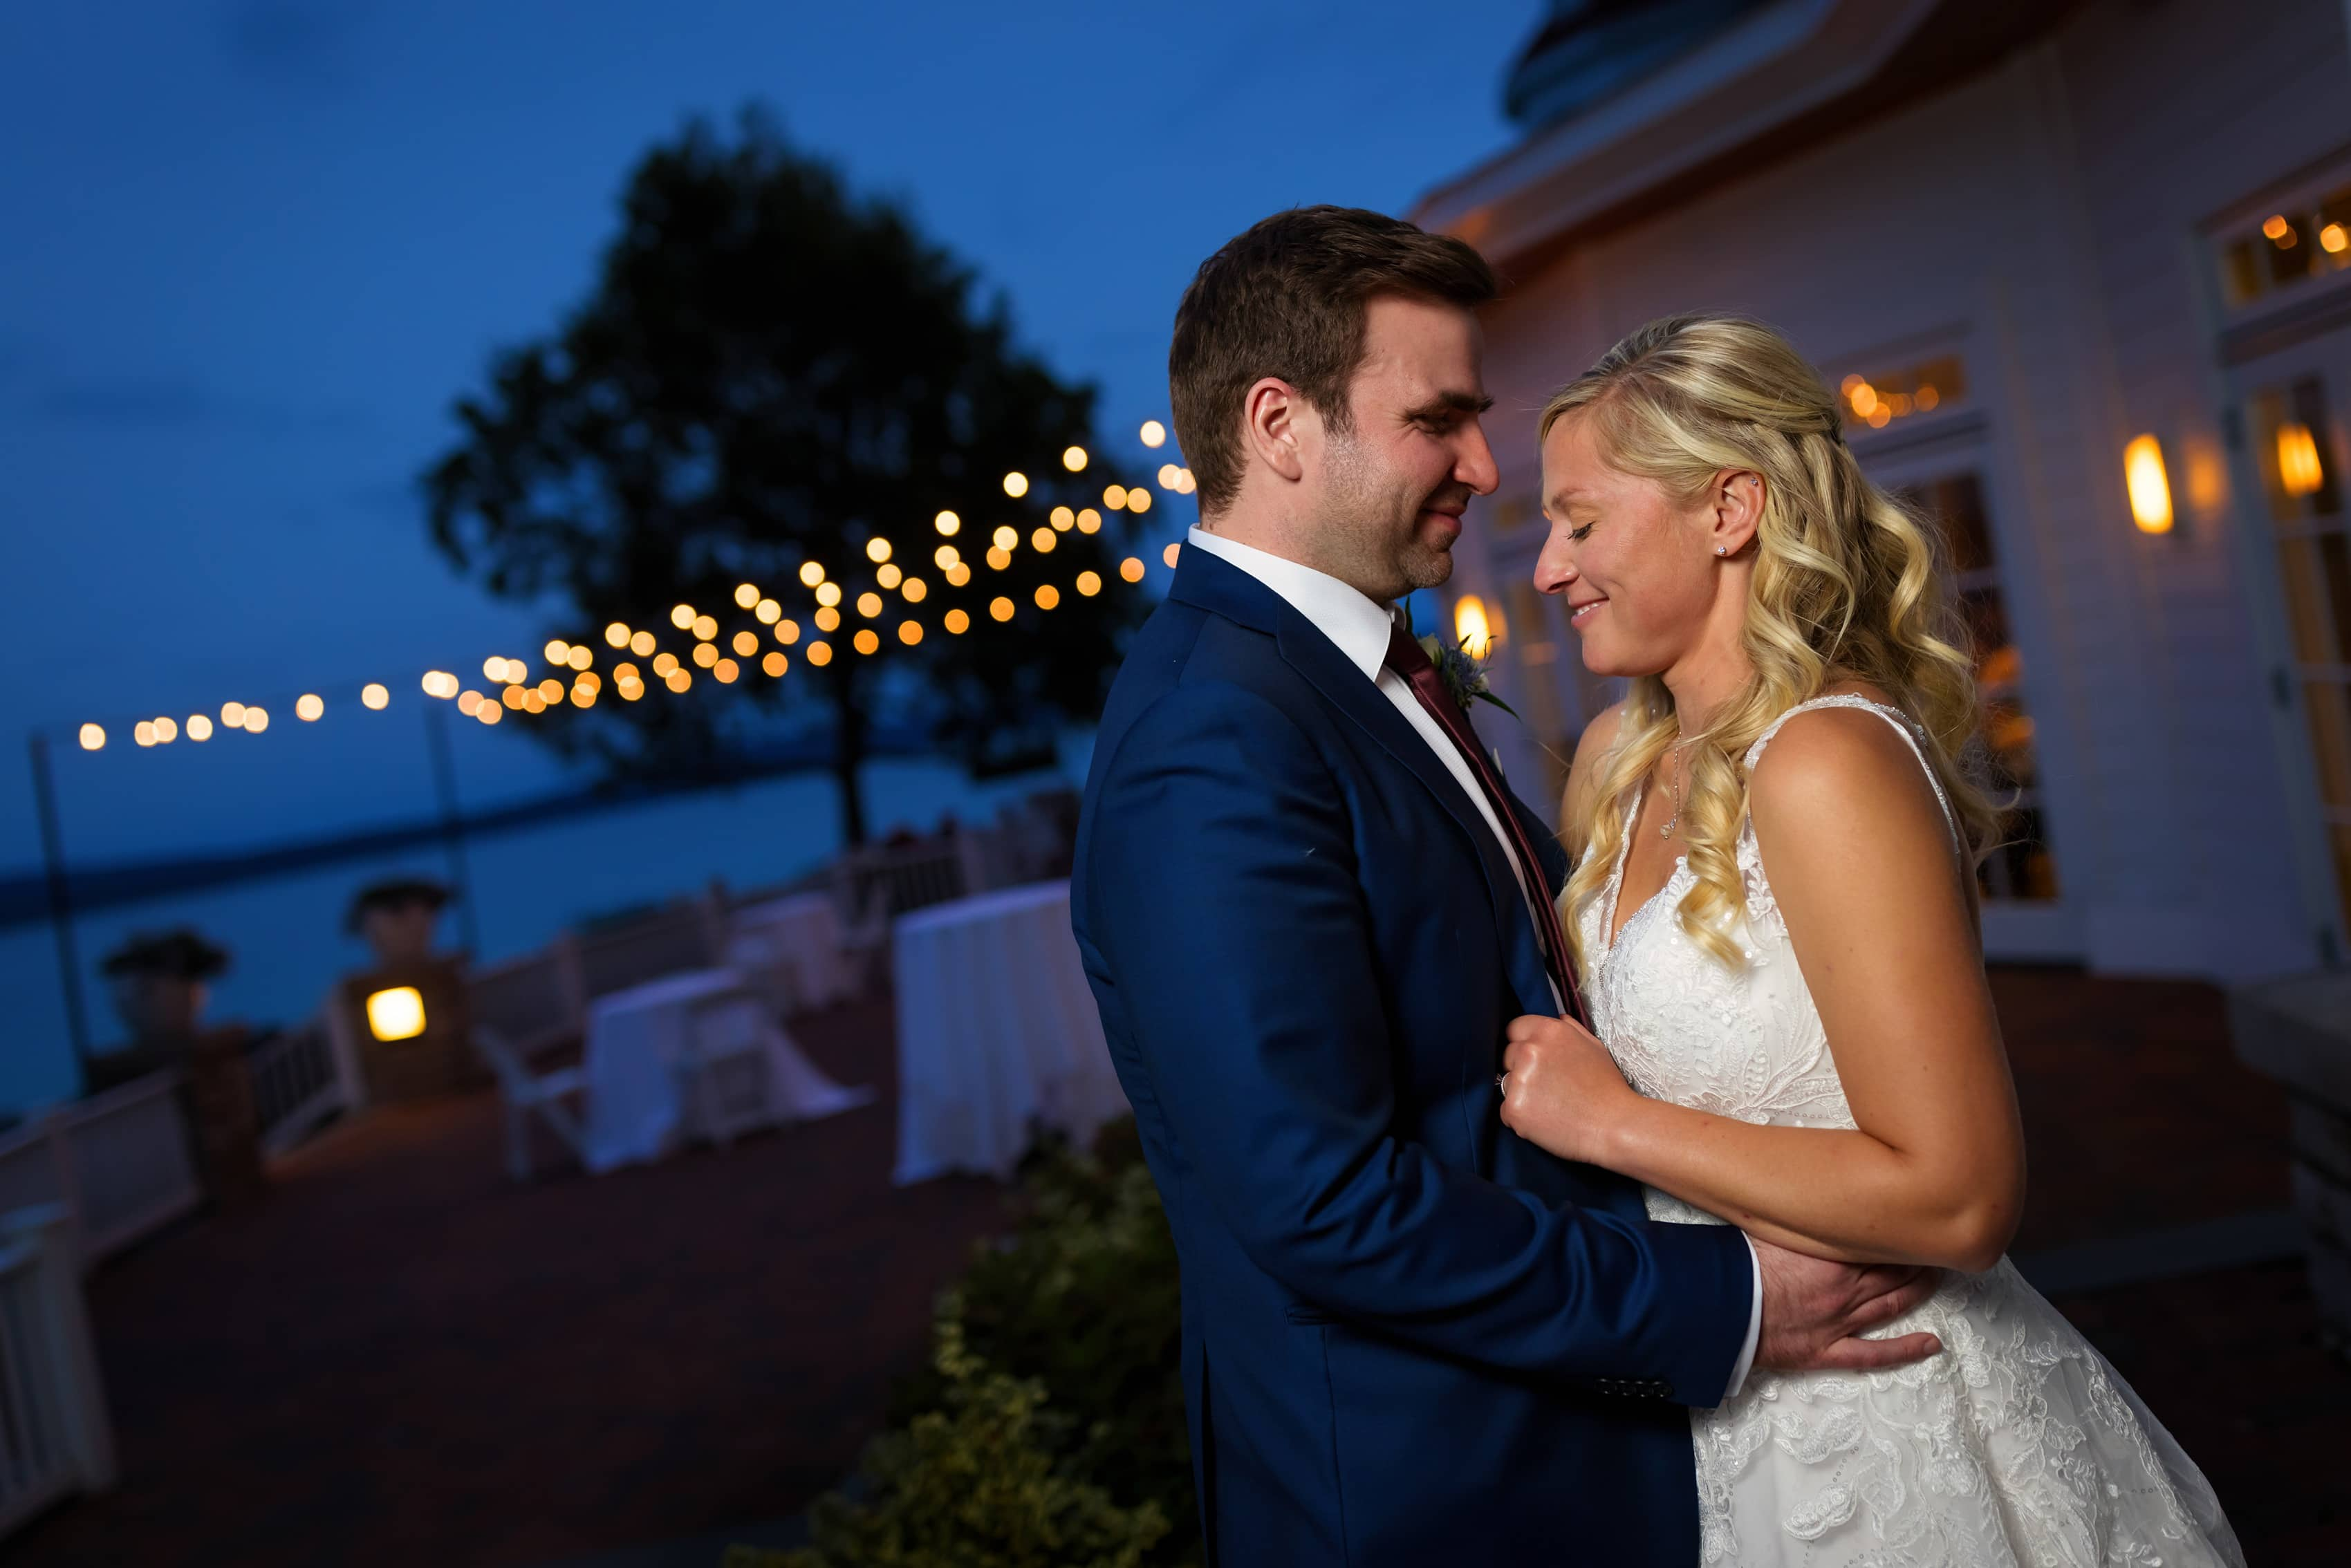 bride and groom pose for wedding portraits with twilight sky and market lights in the background at Bay Harbor Inn in Petoskey, Michigan